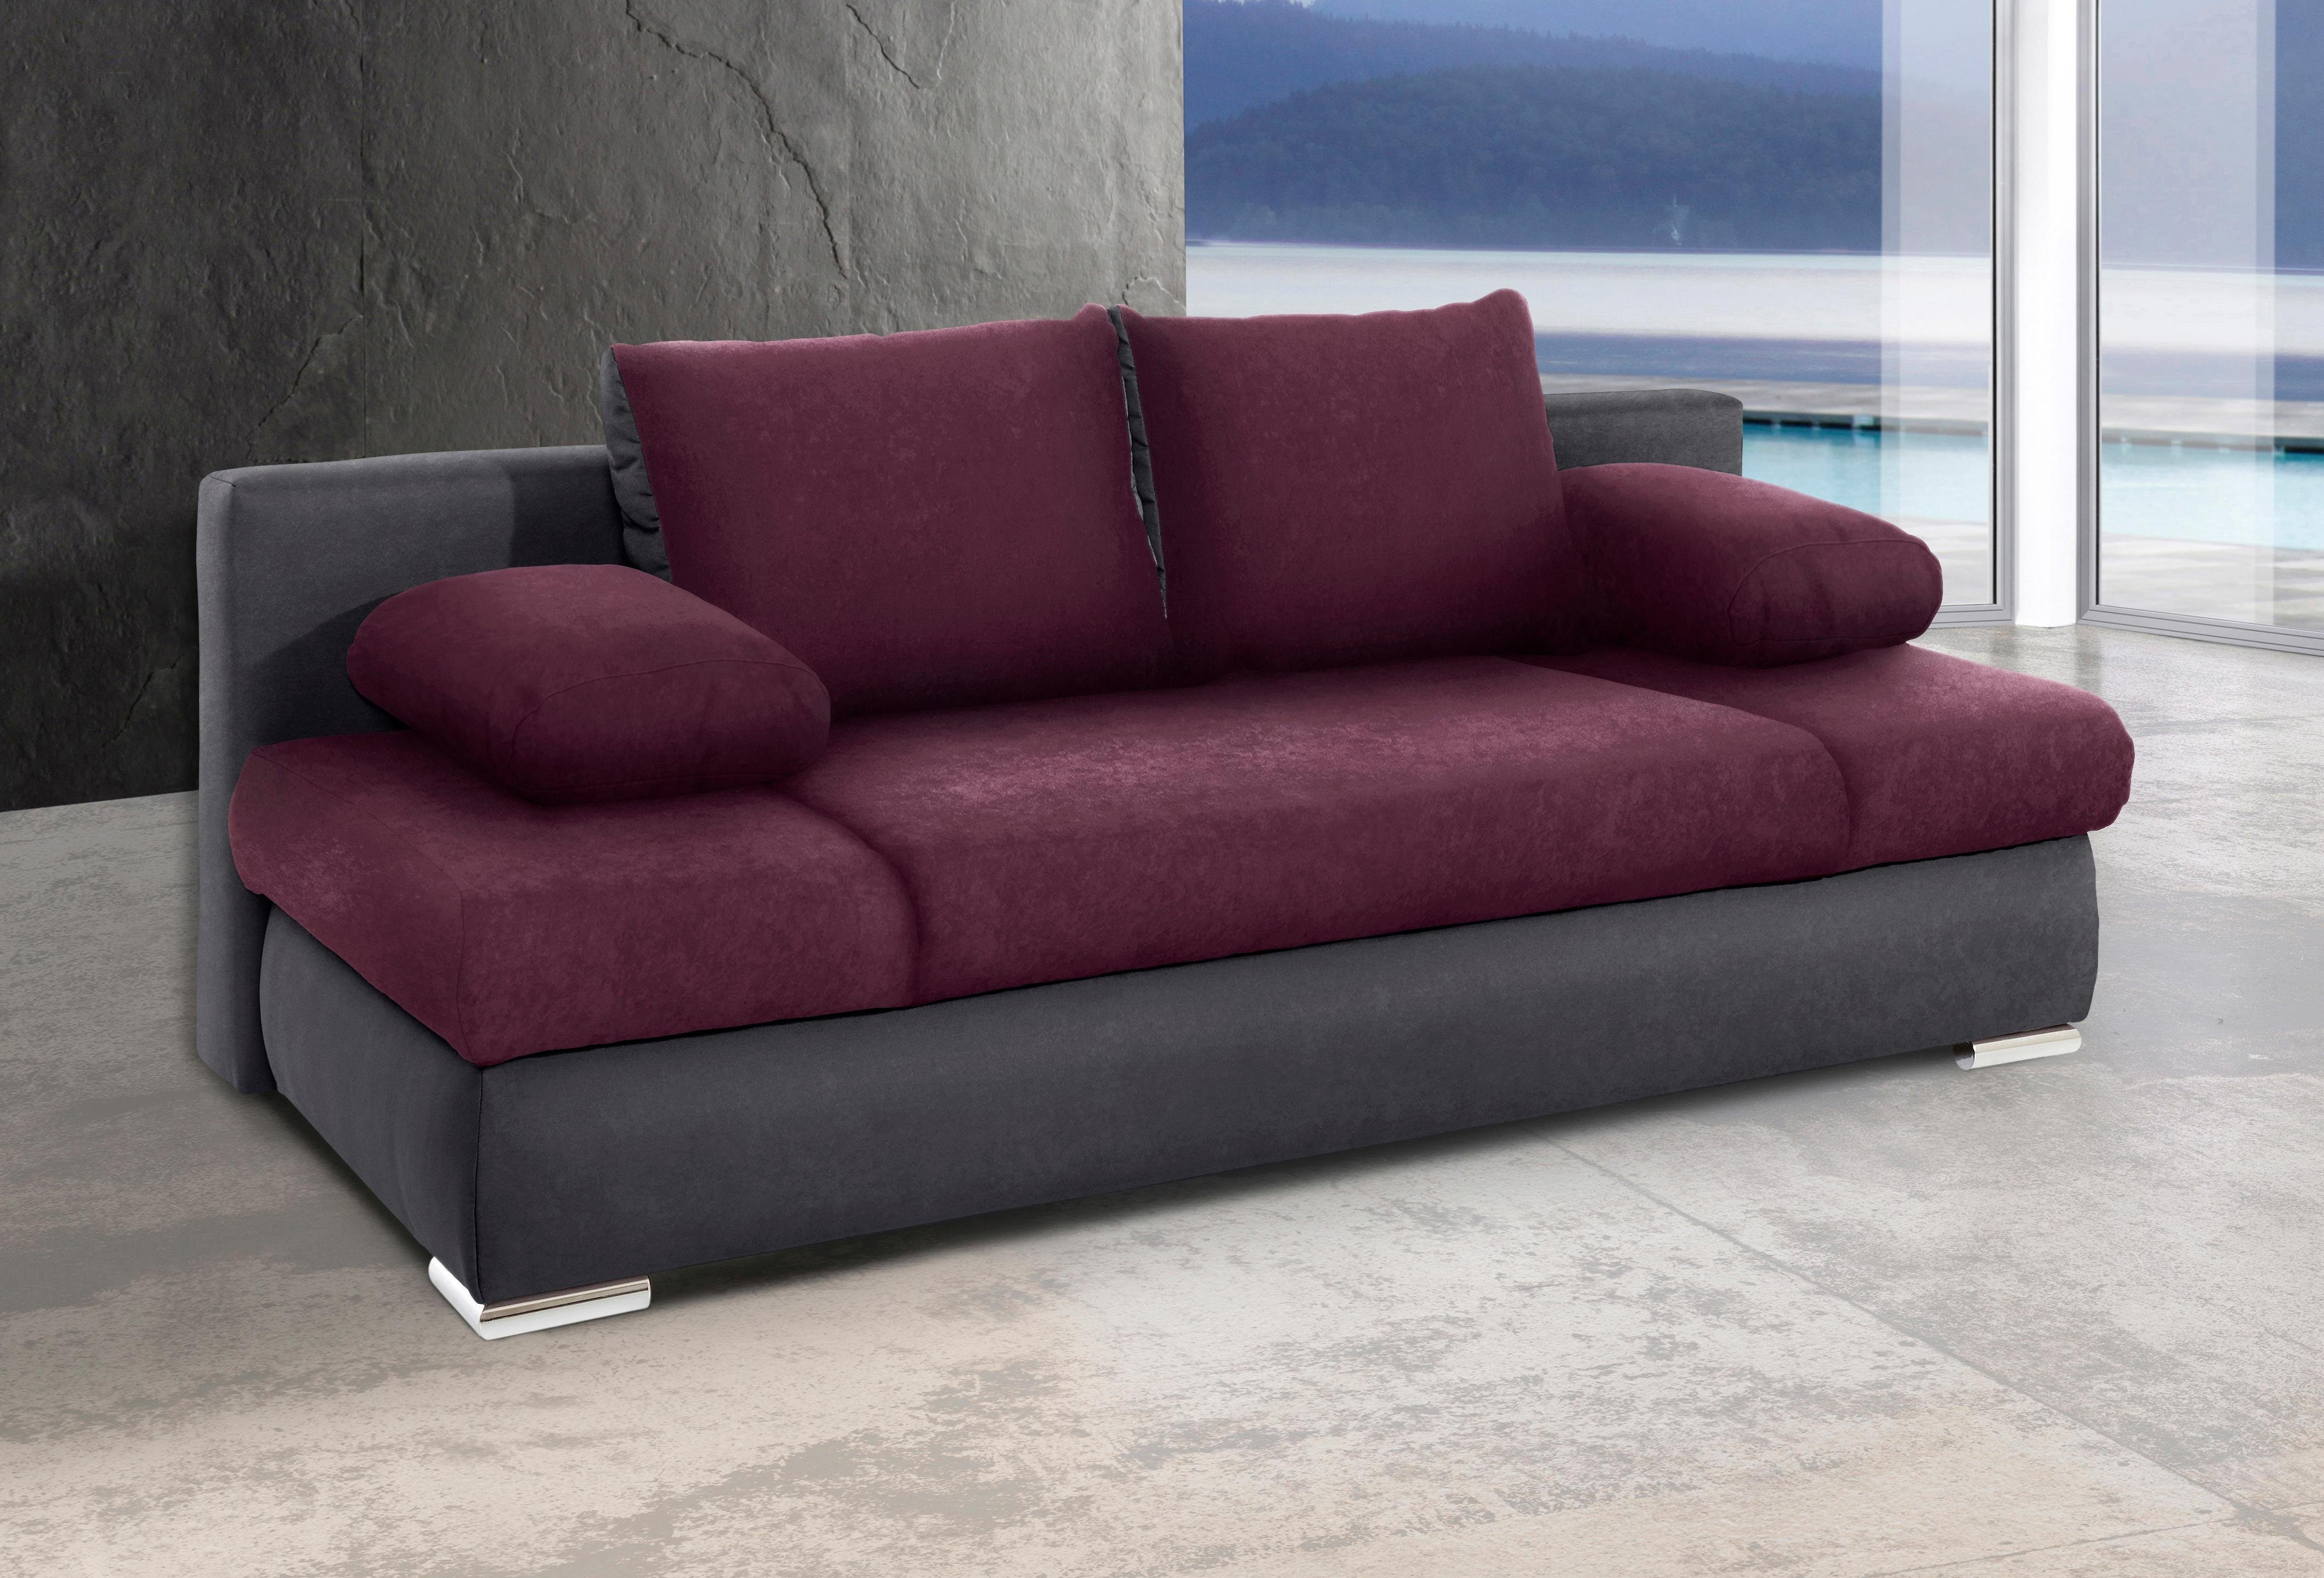 Collection Ab Schlafsofa Inklusive Bettfunktion Online - Schlafsofas Online